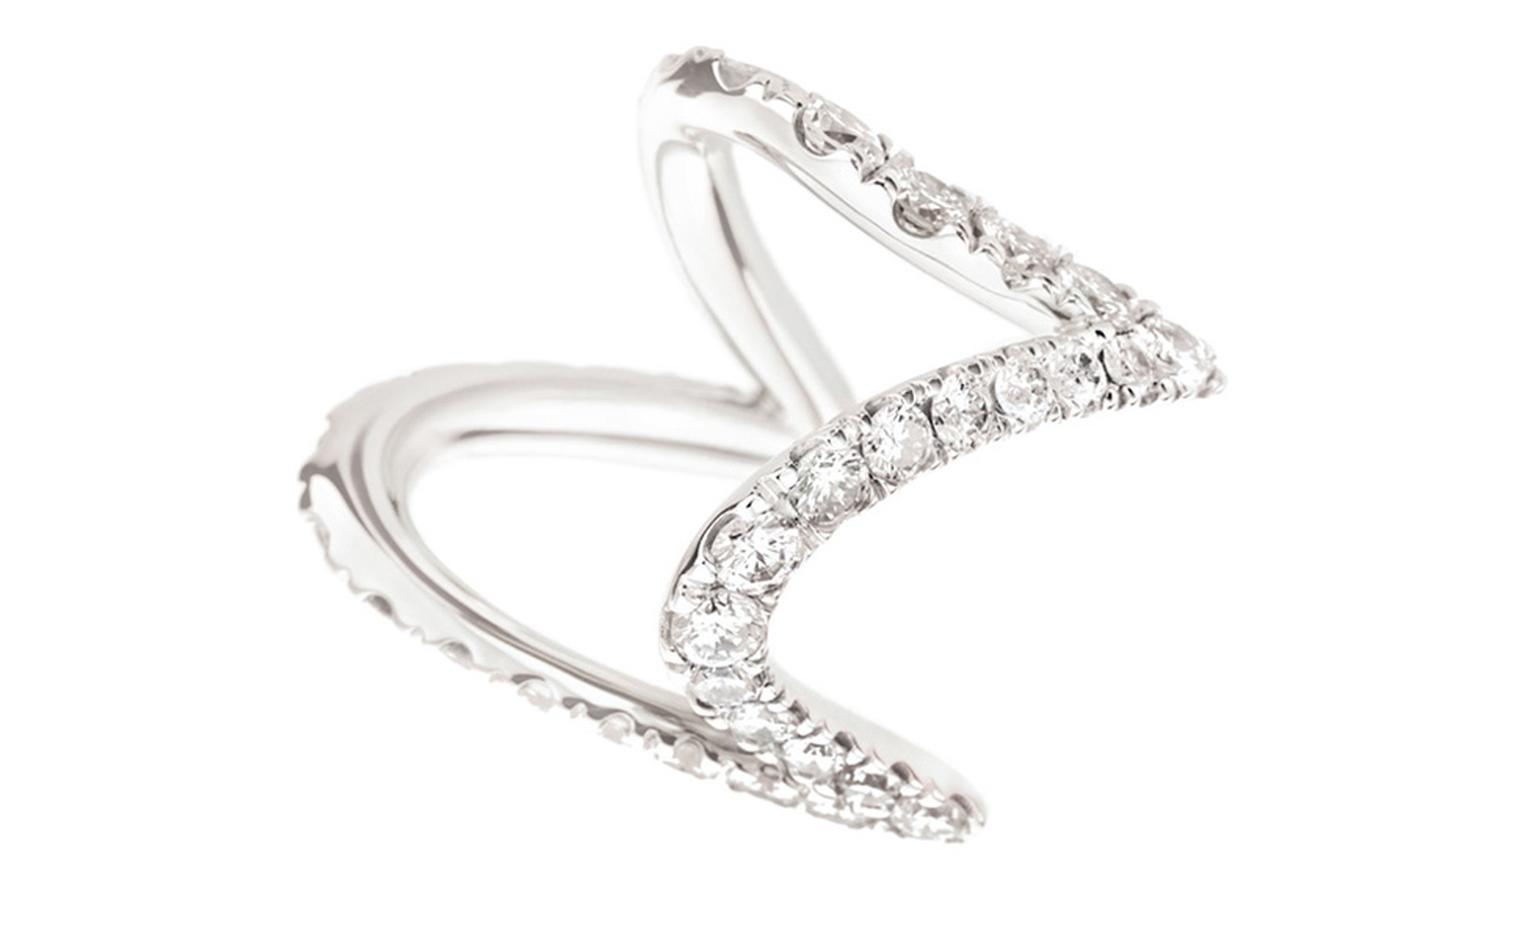 PAMPULHA Ring in white gold and diamonds.